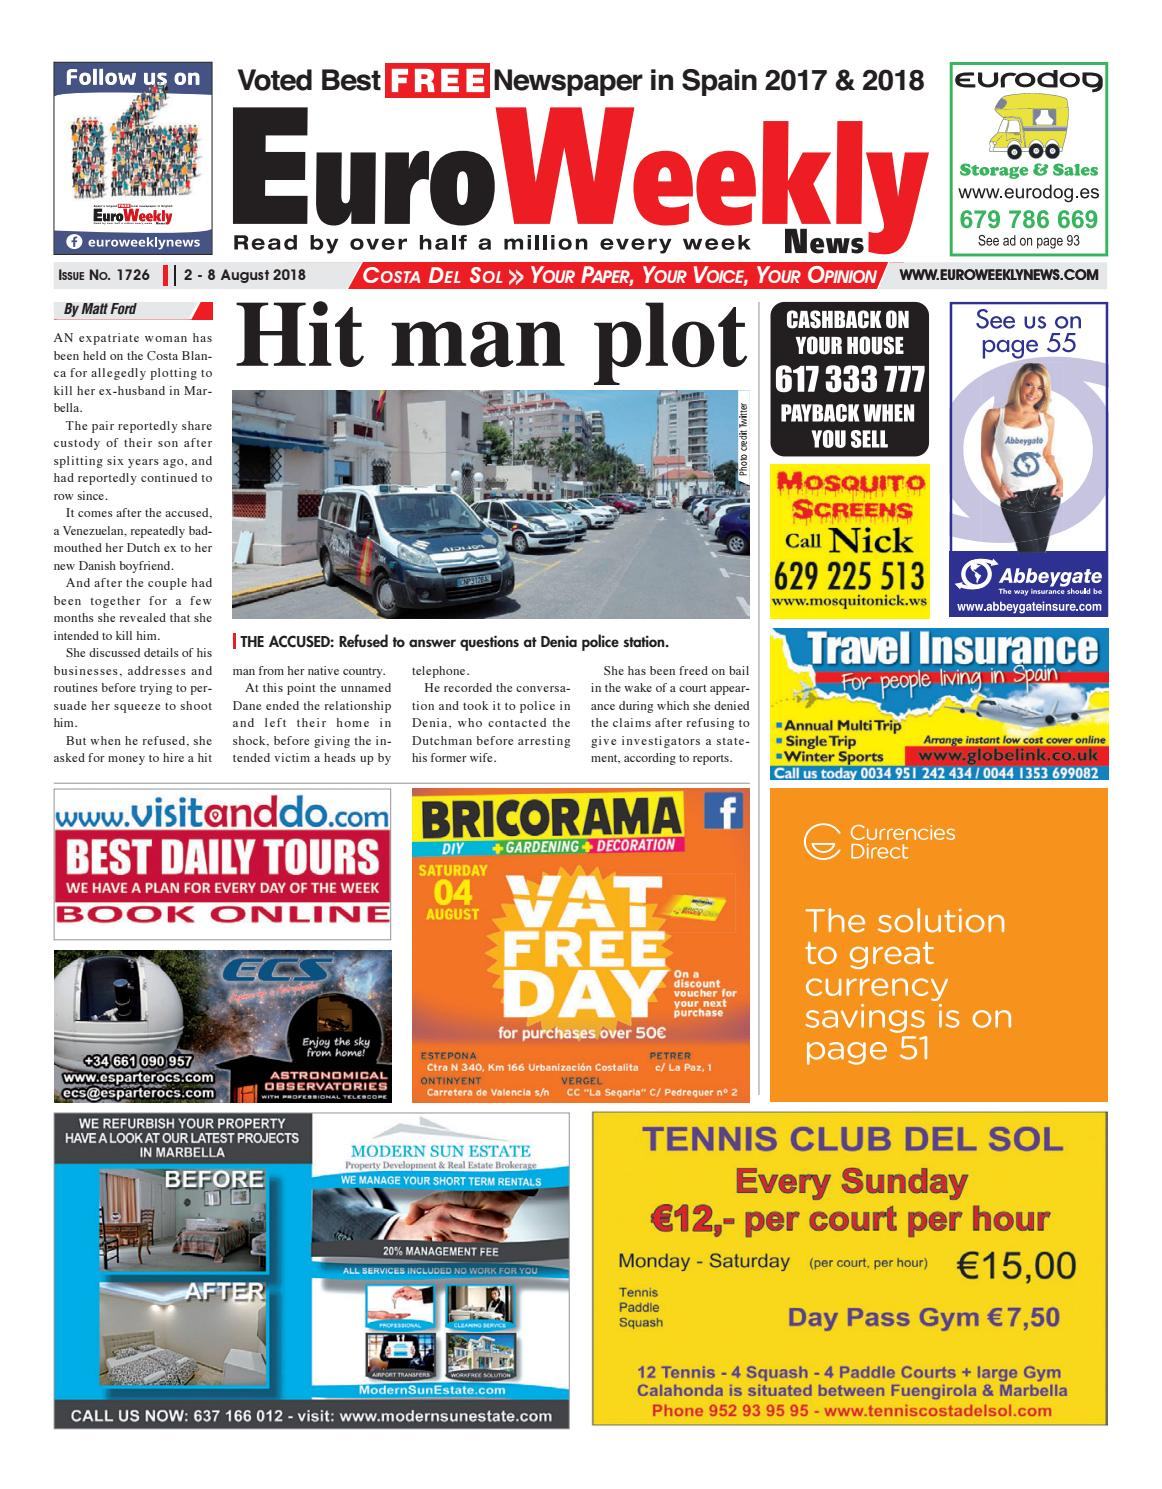 d88887101d5d29 Euro Weekly News - Costa del Sol 2 - 8 August 2018 Issue 1726 by Euro  Weekly News Media S.A. - issuu